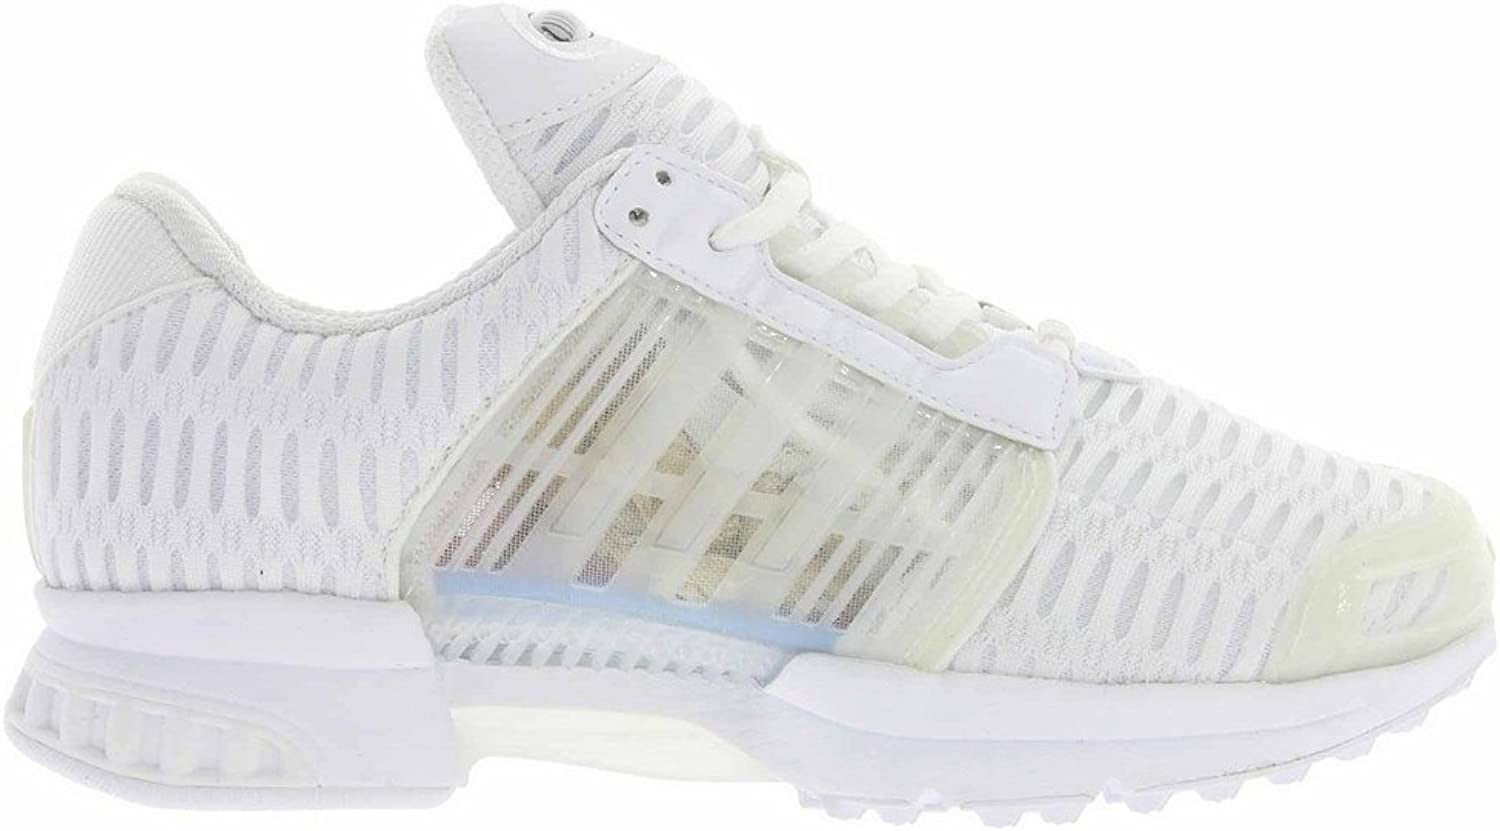 Adidas ClimaCool 1 Classic Retro, Low Top, Running Sun